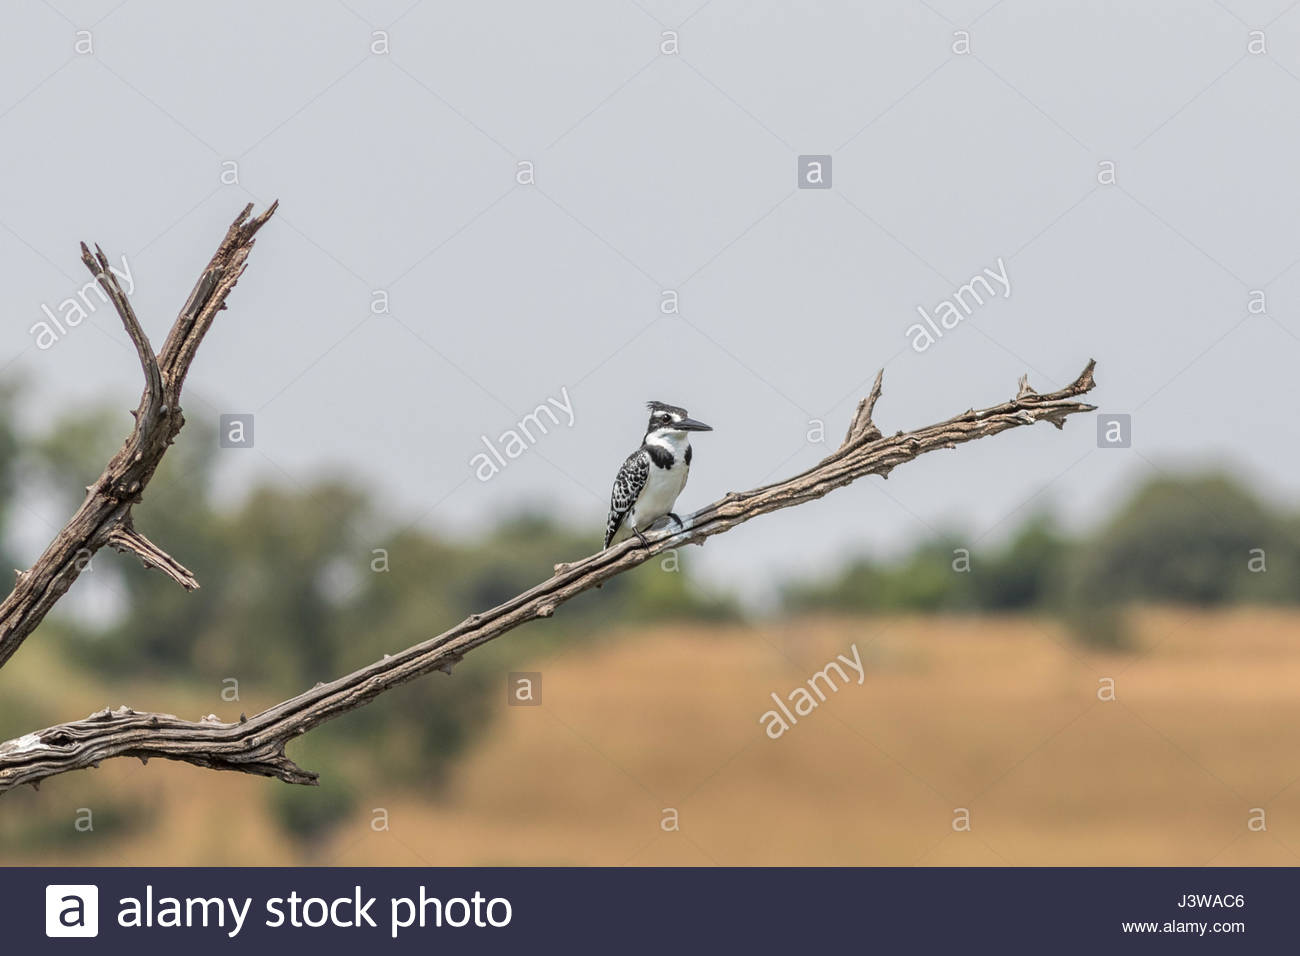 A Pied Kingfisher perched on the branch of a dead thorn tree in the Pilanesberg National Park, South Africa. - Stock Image